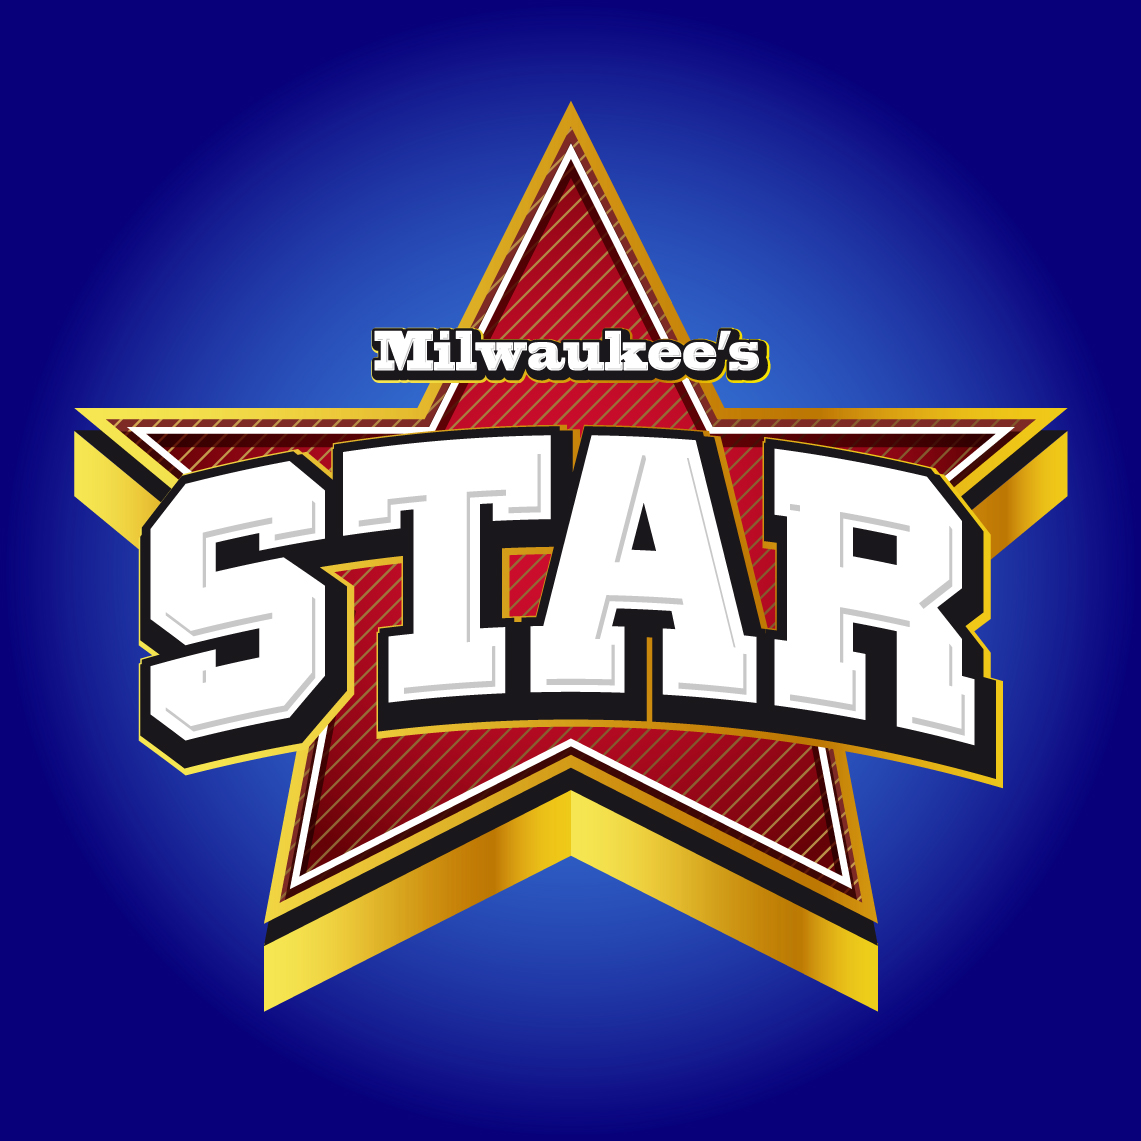 milwaukees star logo brands of the world� download